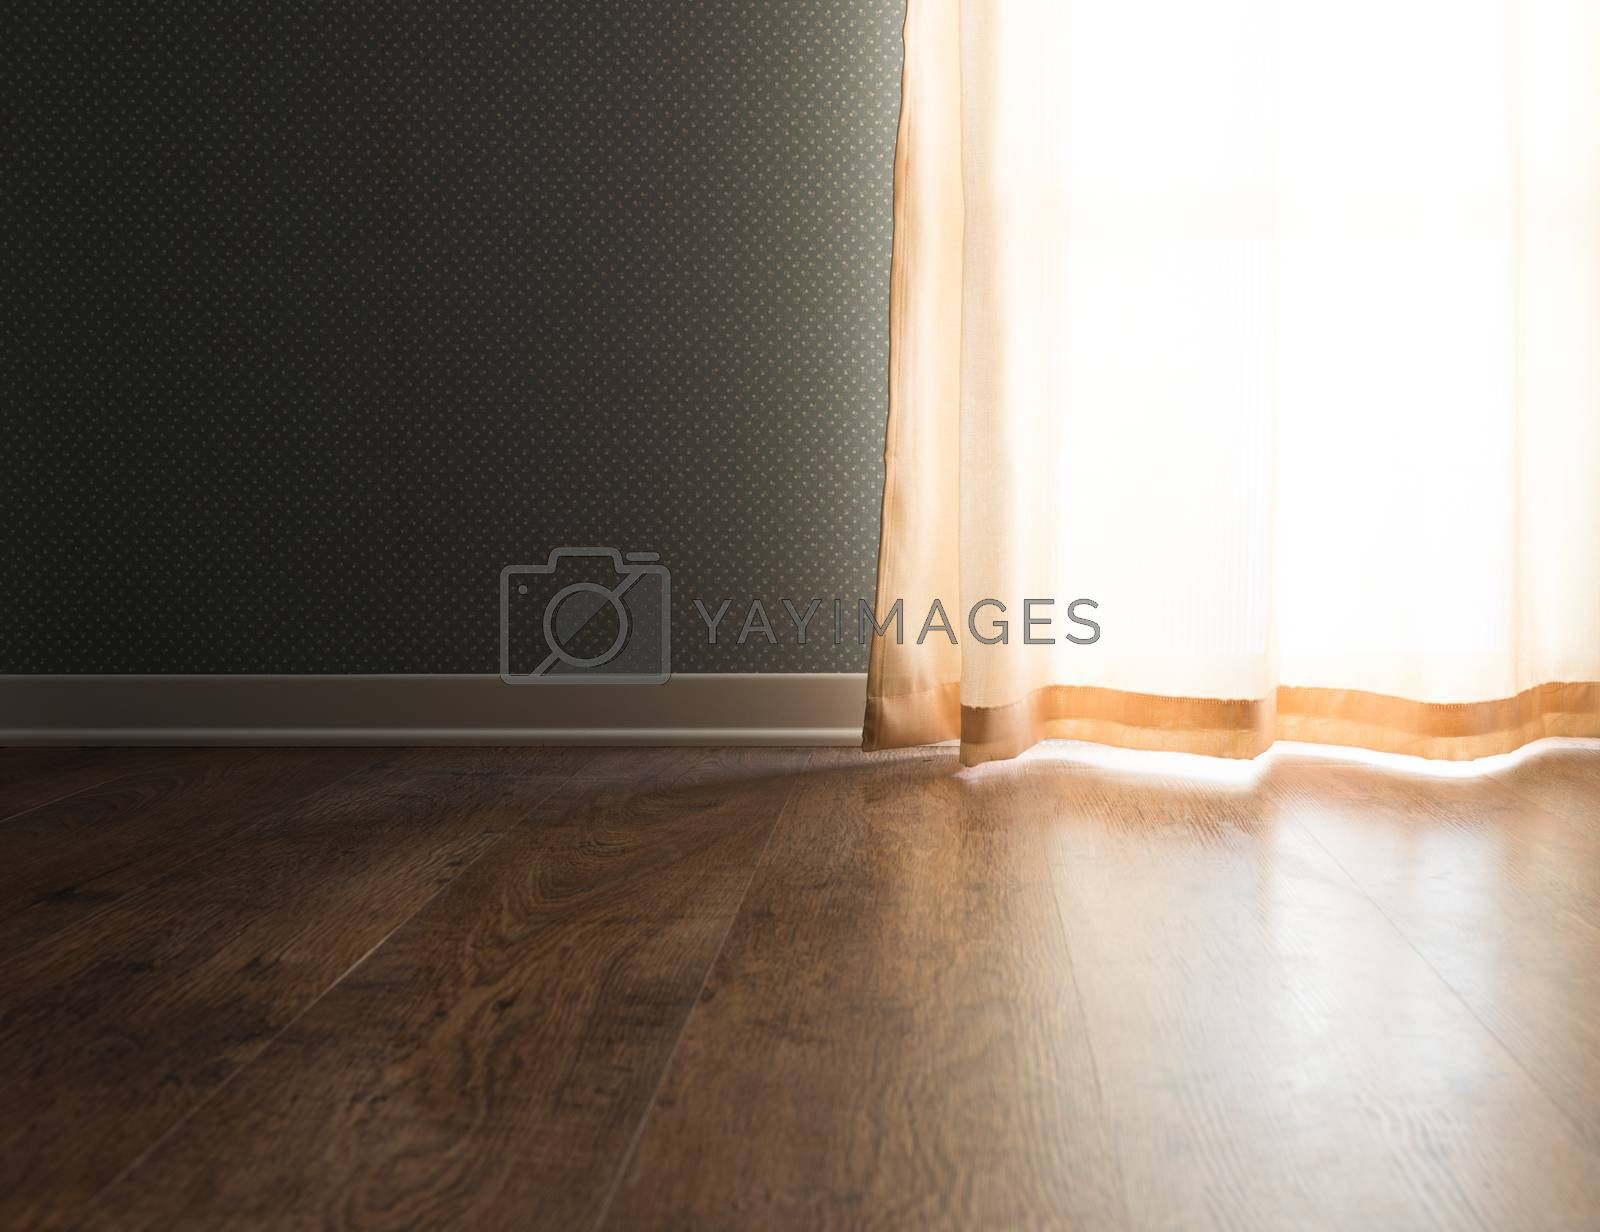 Elegant vintage interior with hardwood floor, window with curtain and dotted wallpaper.